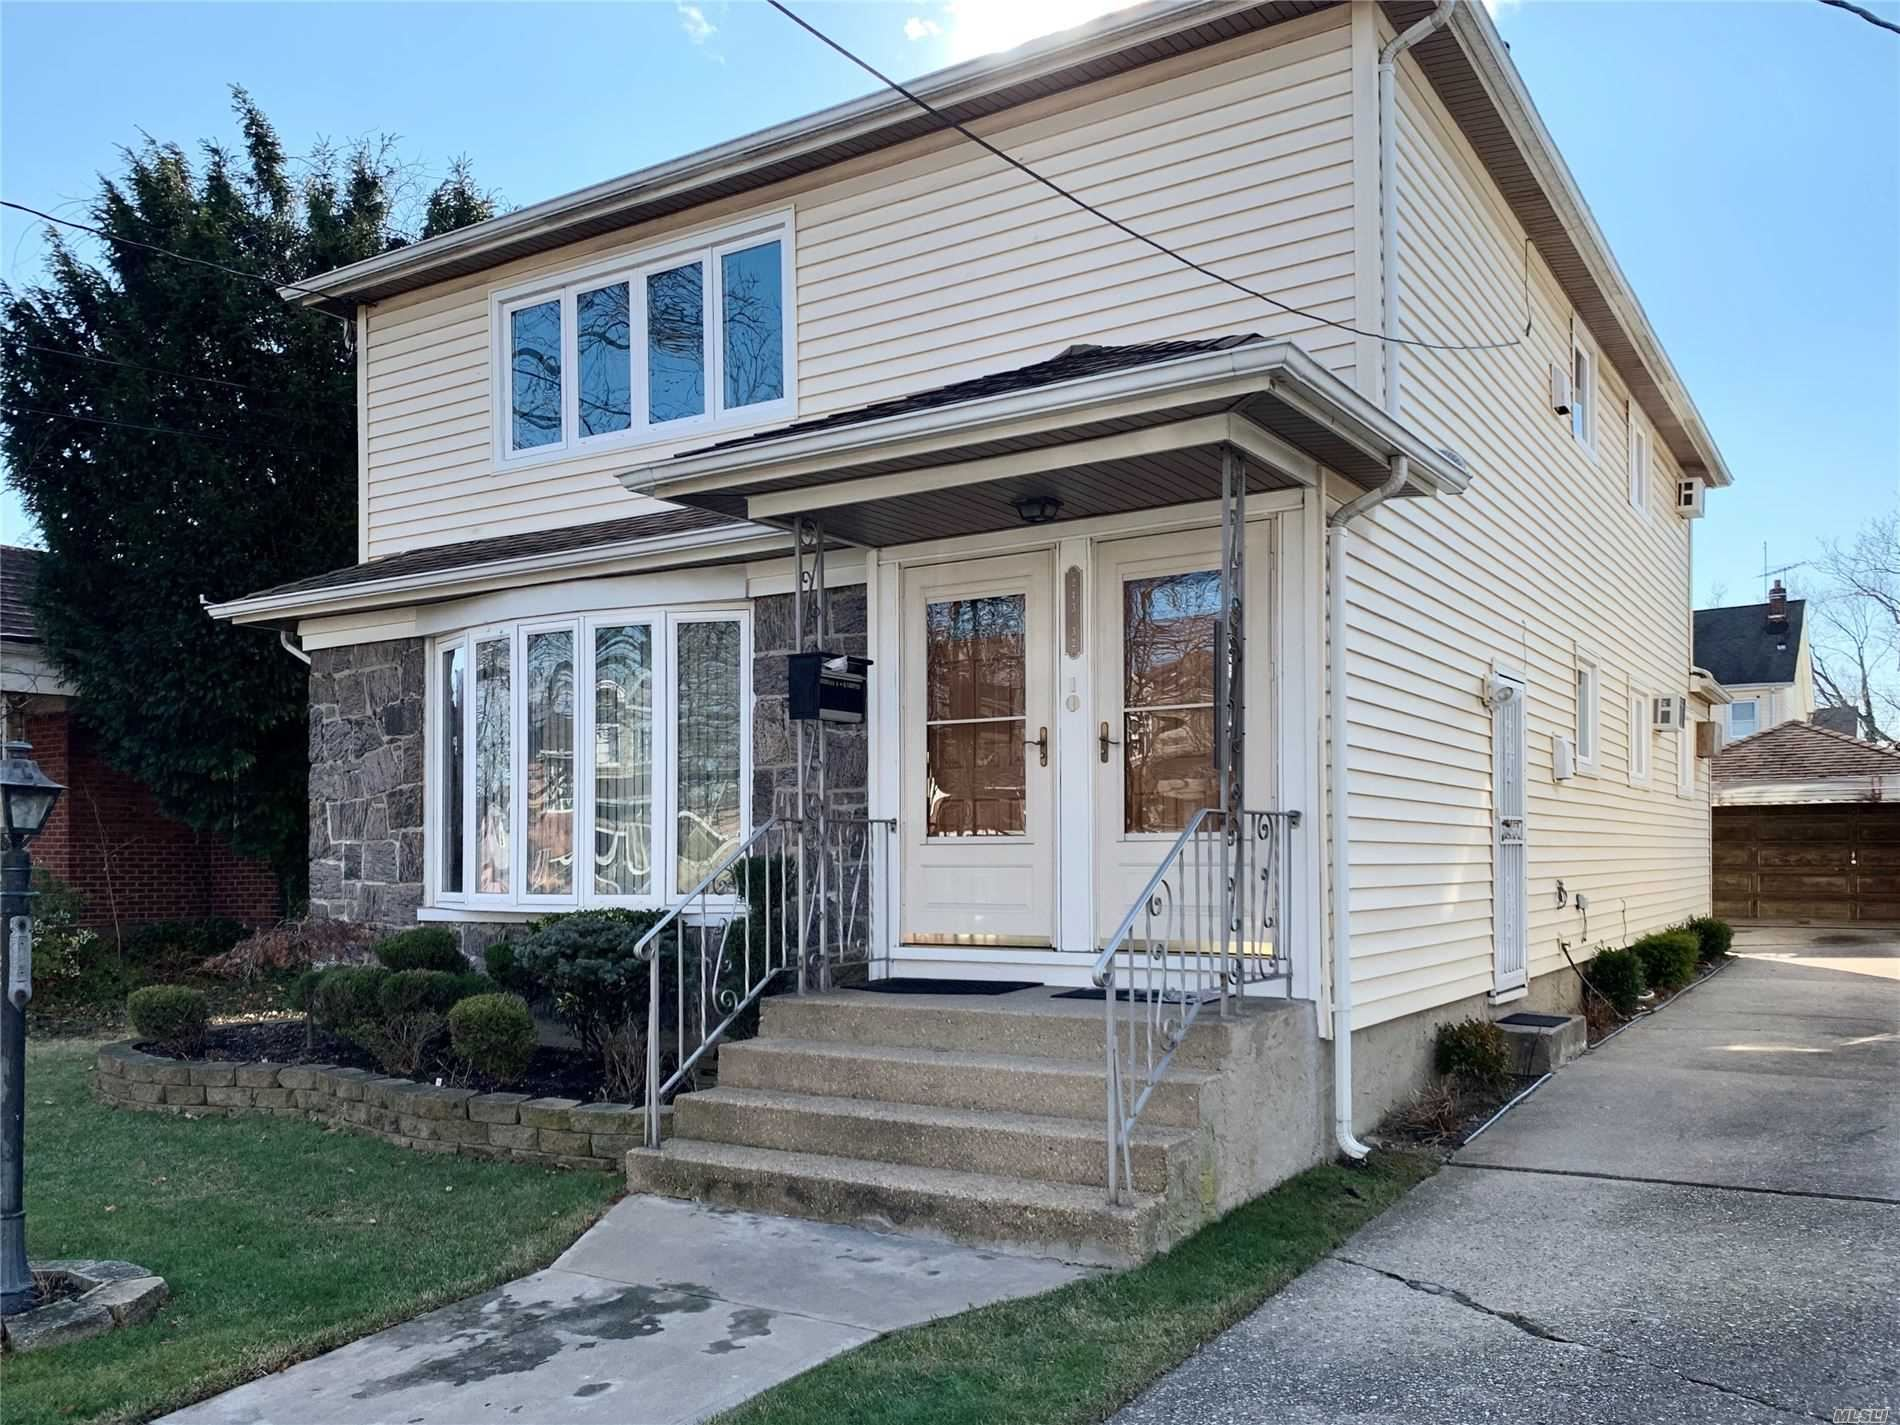 243-32 Caney Road, Rosedale, NY 11422 - MLS#: 3189239